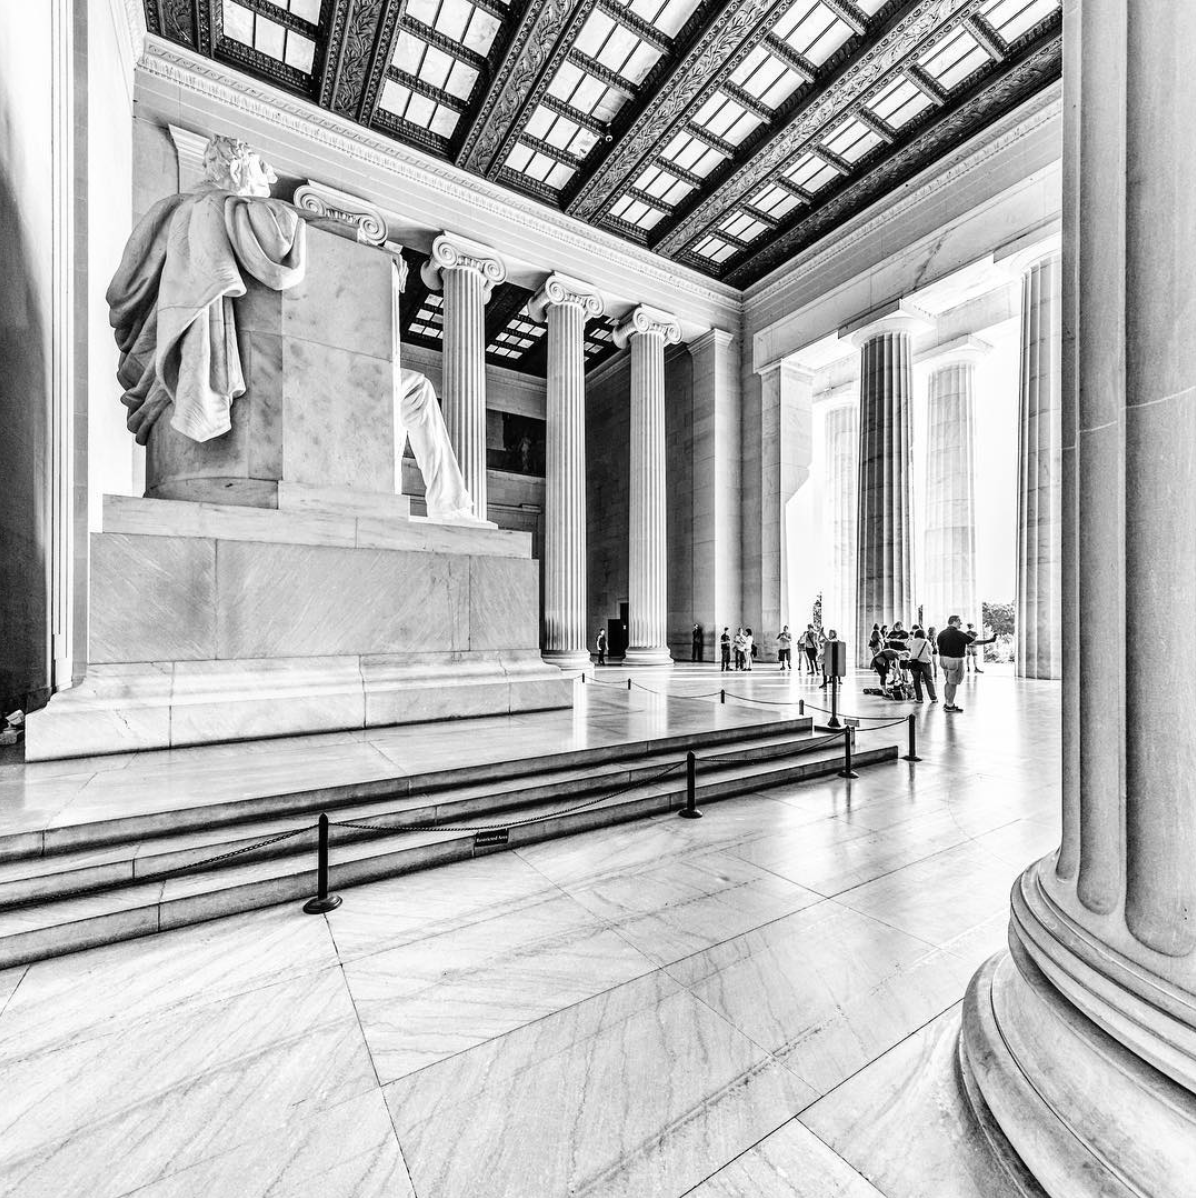 We've never seen this view of the Lincoln Memorial. (Image via @kevin.otoole)